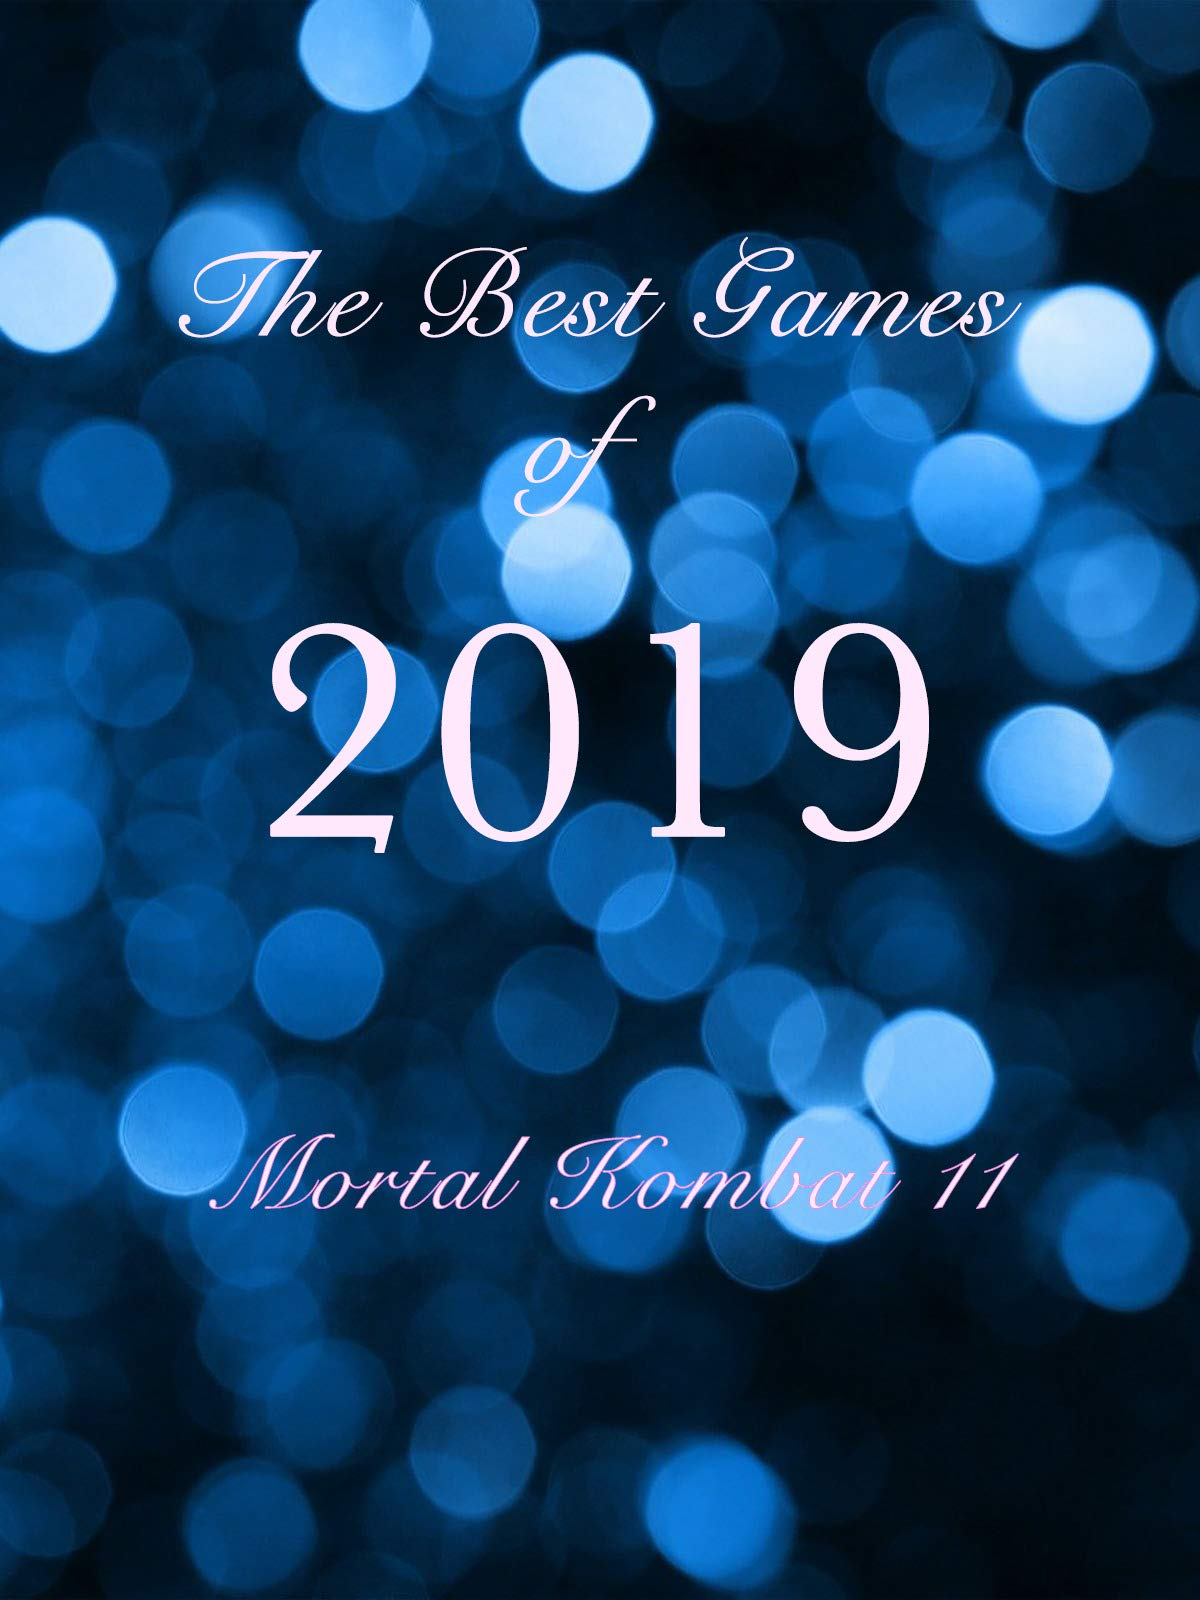 The Best Games of 2019 Mortal Kombat 11